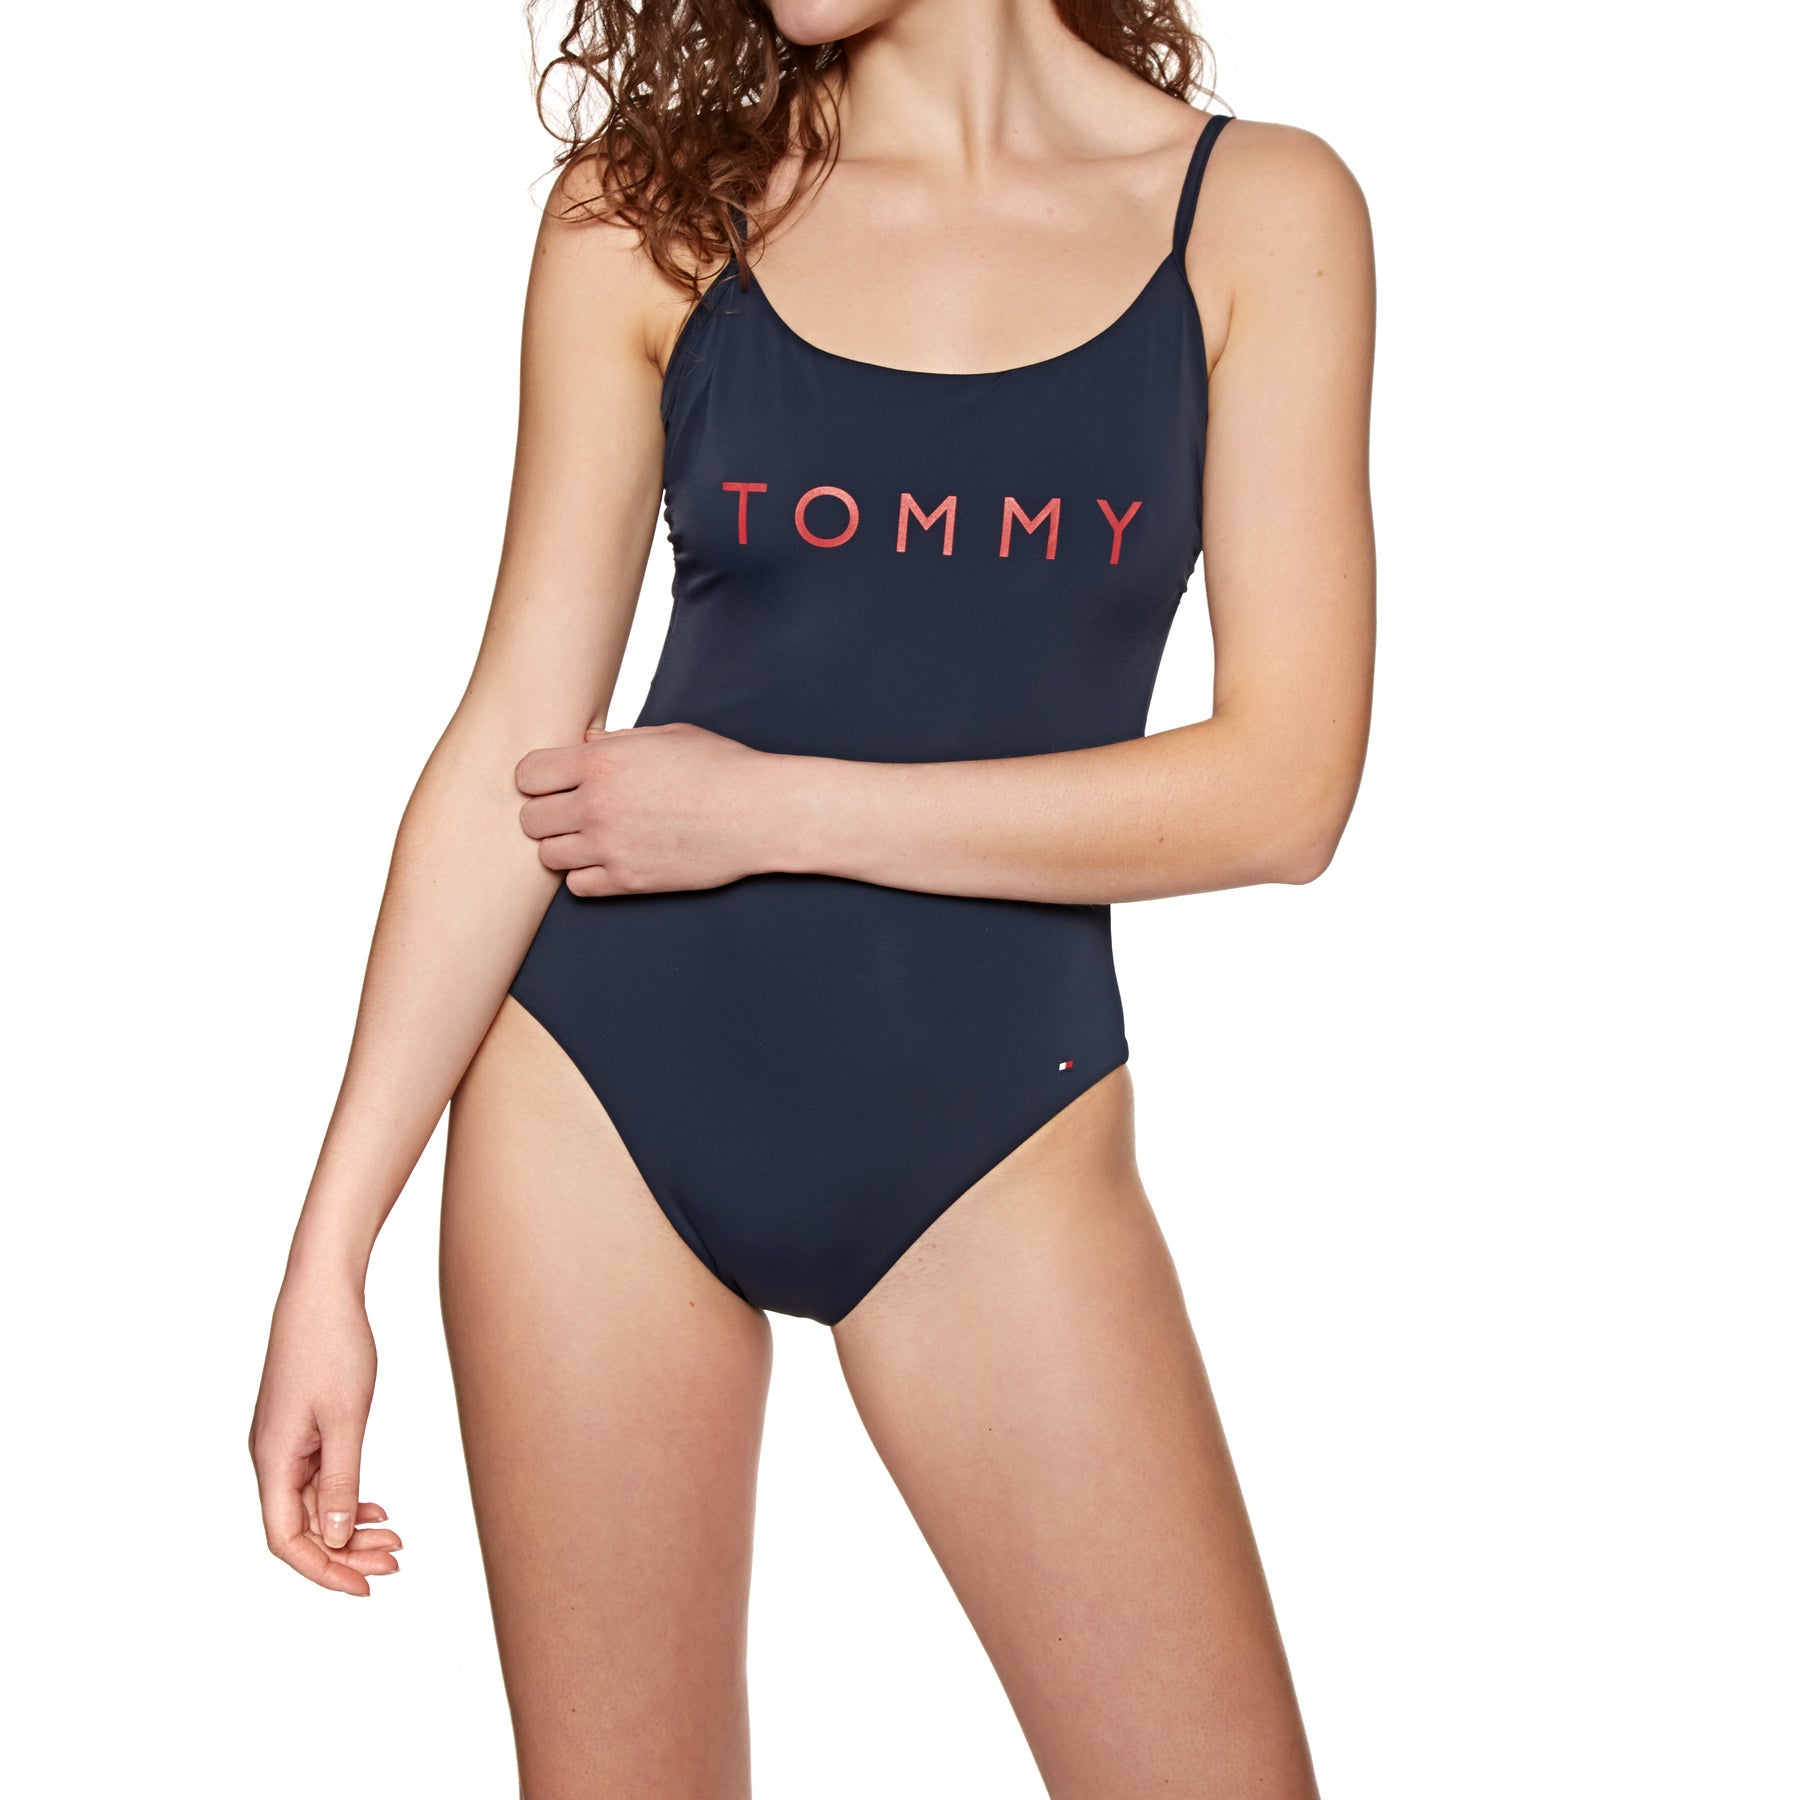 3d74cf90a Tommy Hilfiger One Piece Logo Womens Swimsuit available from Surfdome